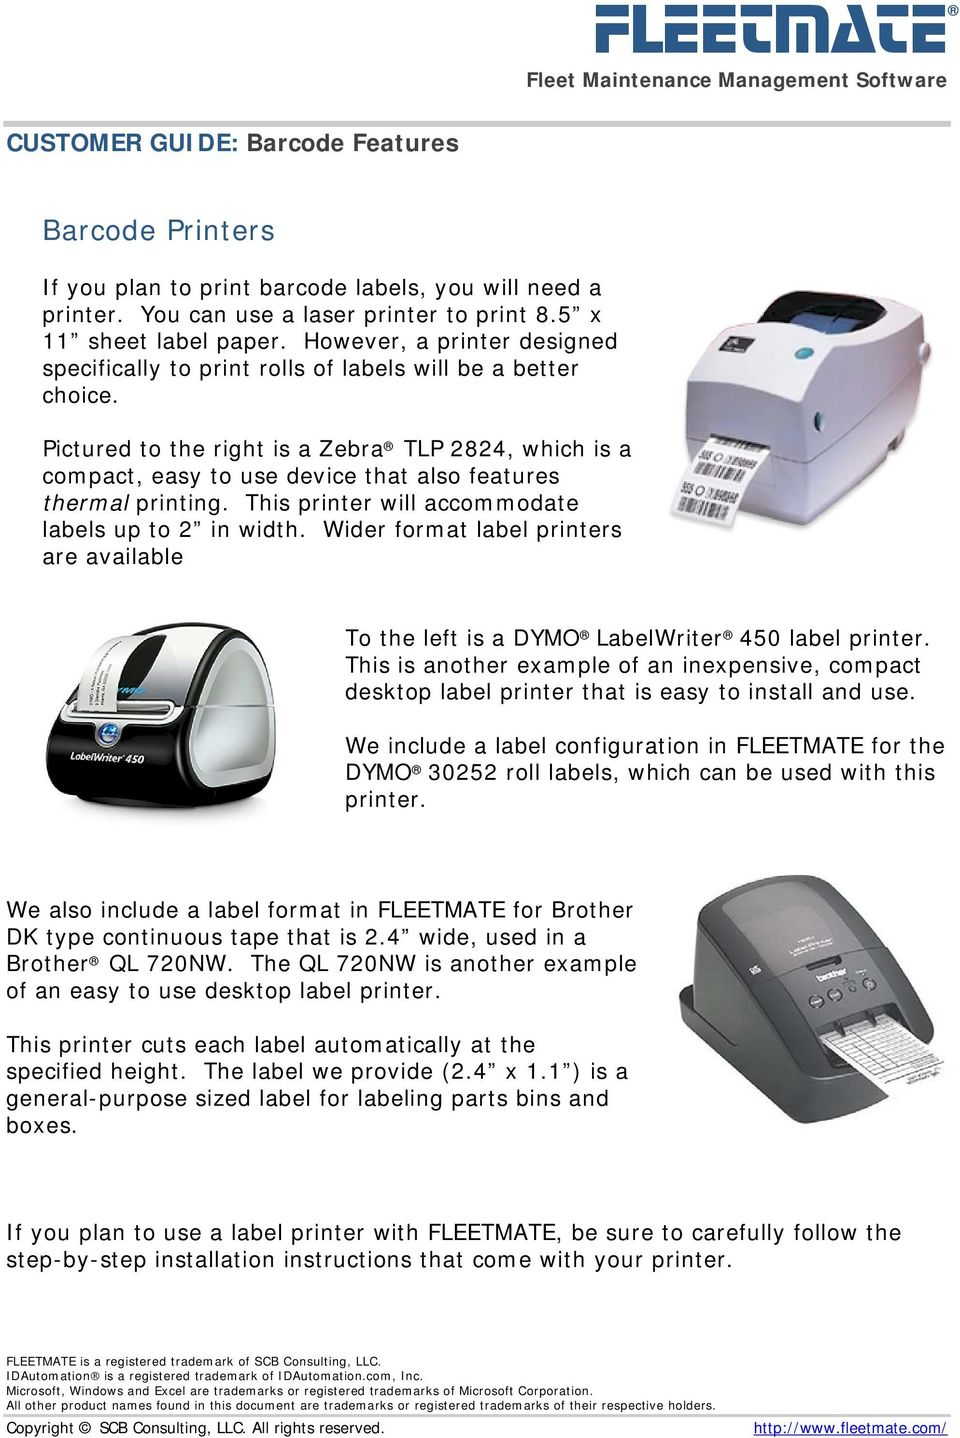 Pictured to the right is a Zebra TLP 2824, which is a compact, easy to use device that also features thermal printing. This printer will accommodate labels up to 2 in width.